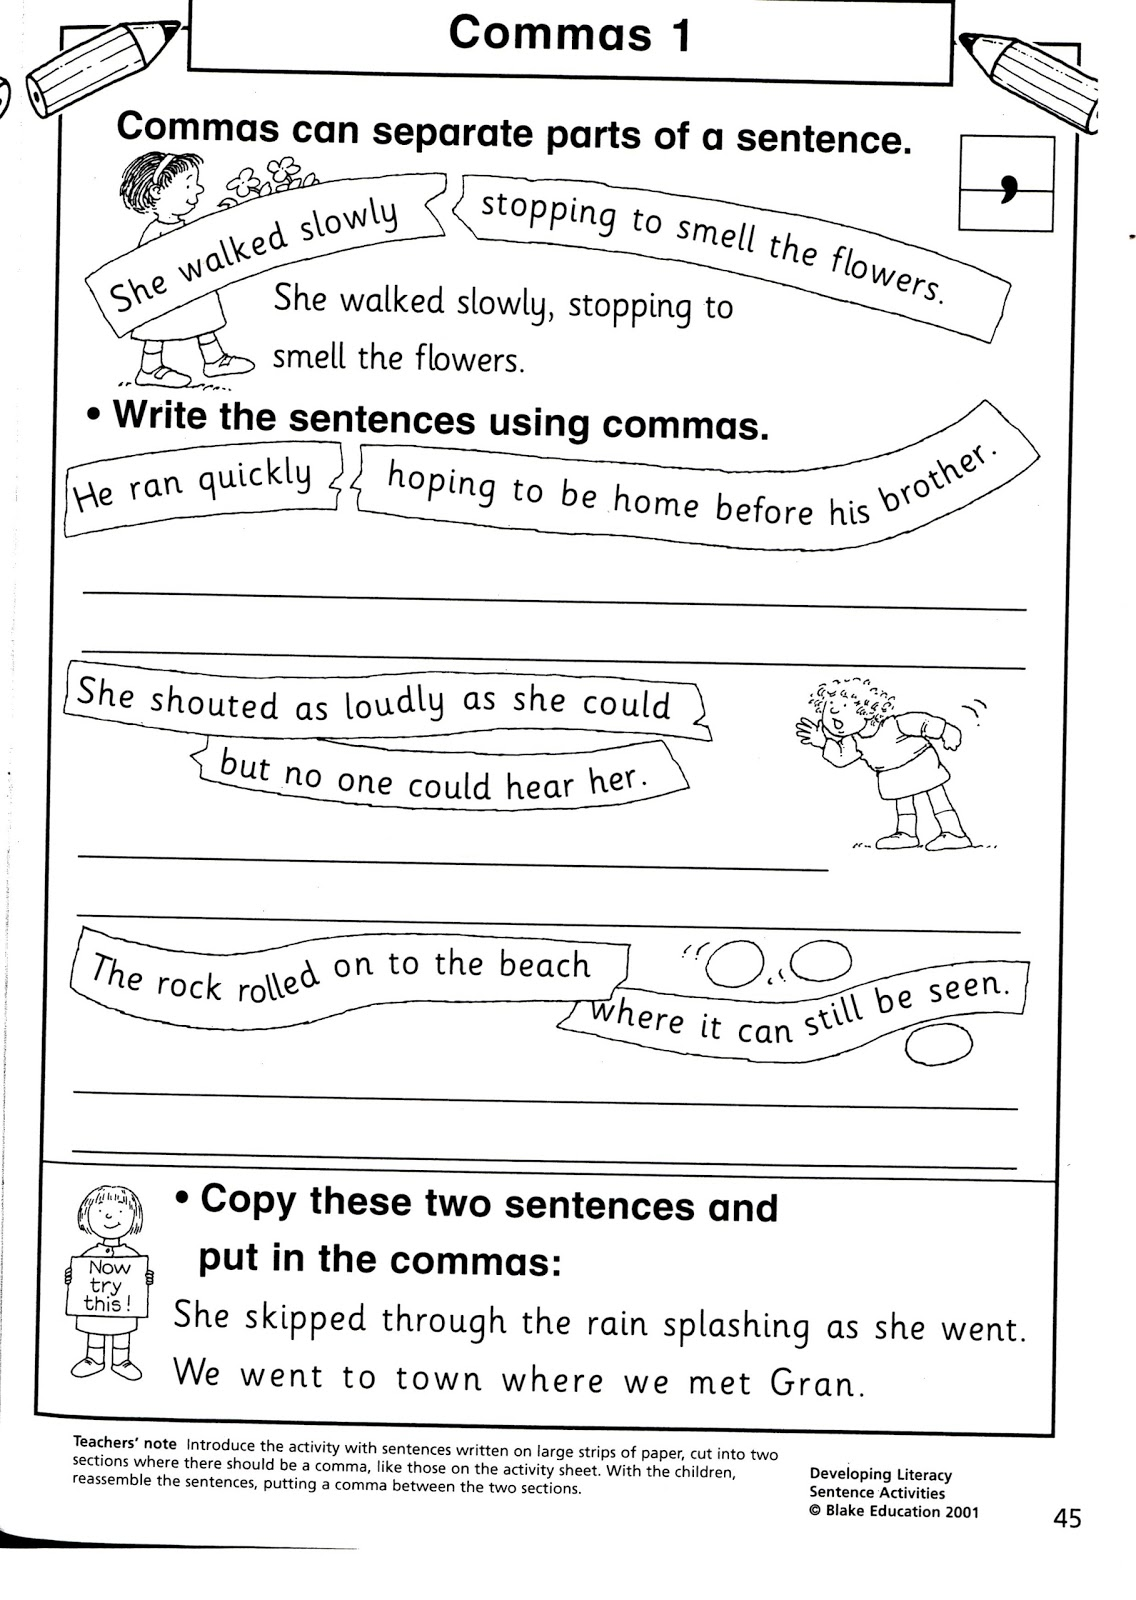 worksheet Commas Worksheet commas worksheet abitlikethis comma worksheets the students were a little unsettled and chatty however they enjoyed